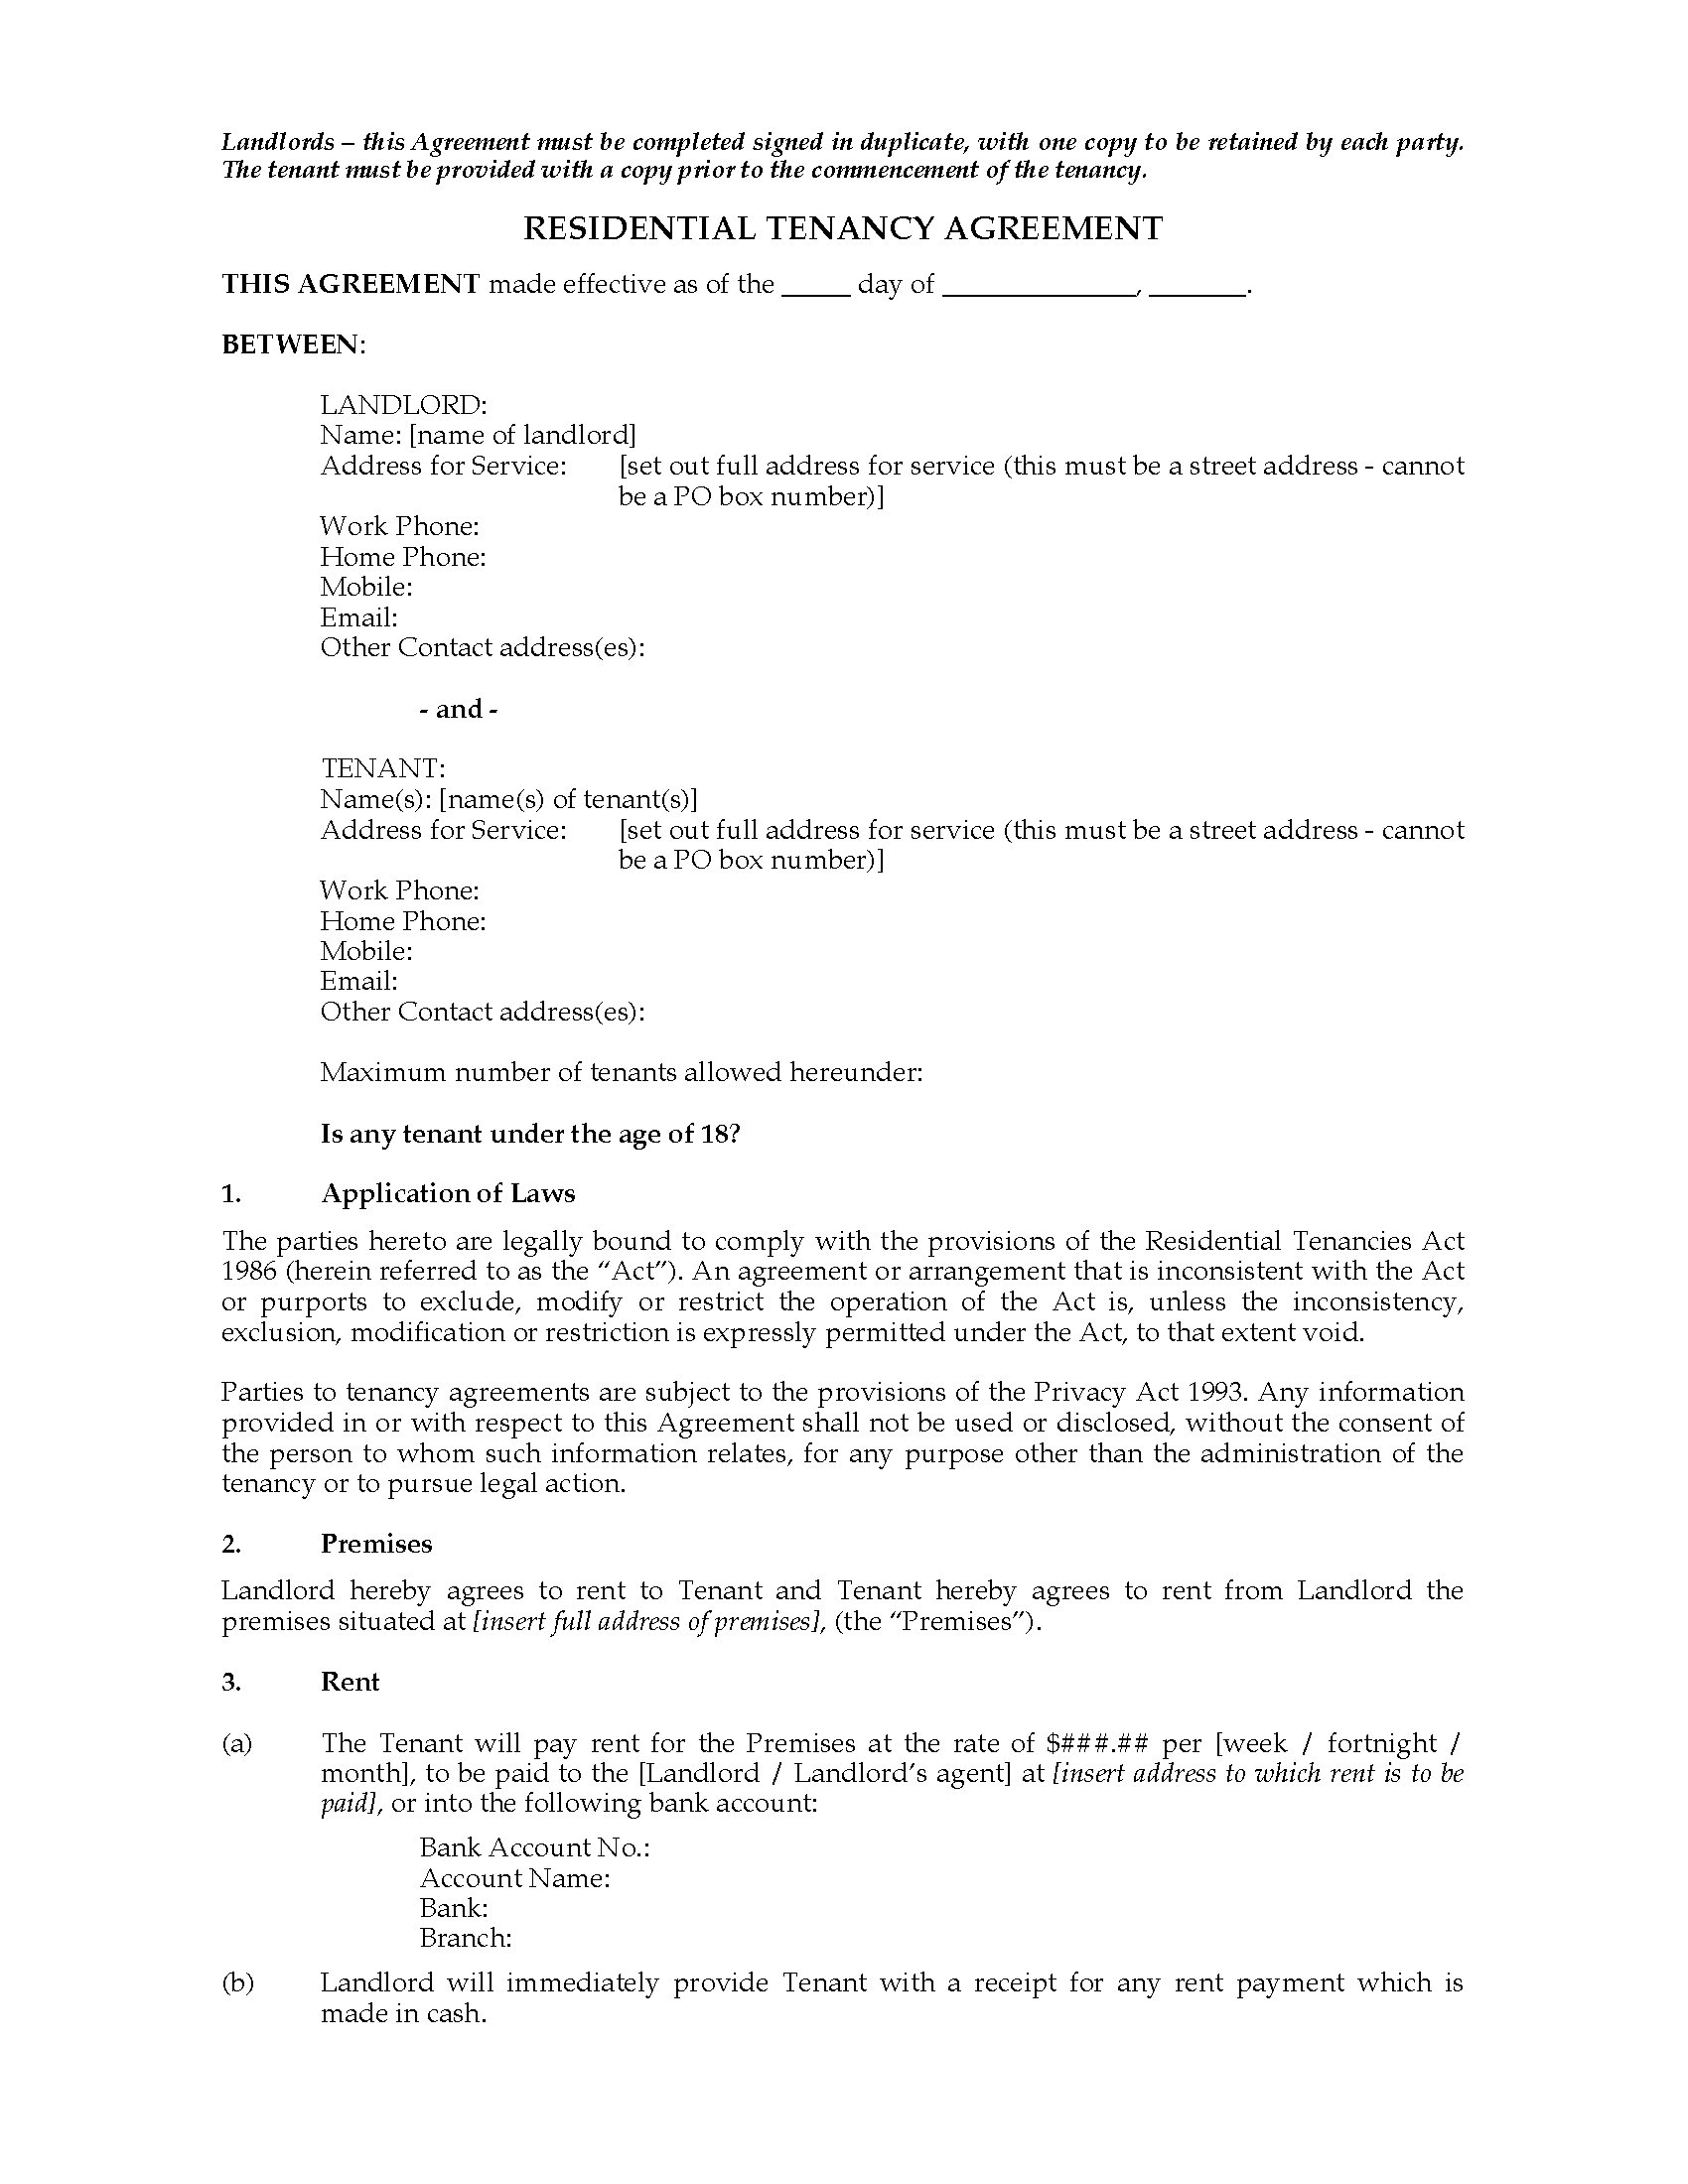 New Zealand Residential Tenancy Agreement Legal Forms And Business